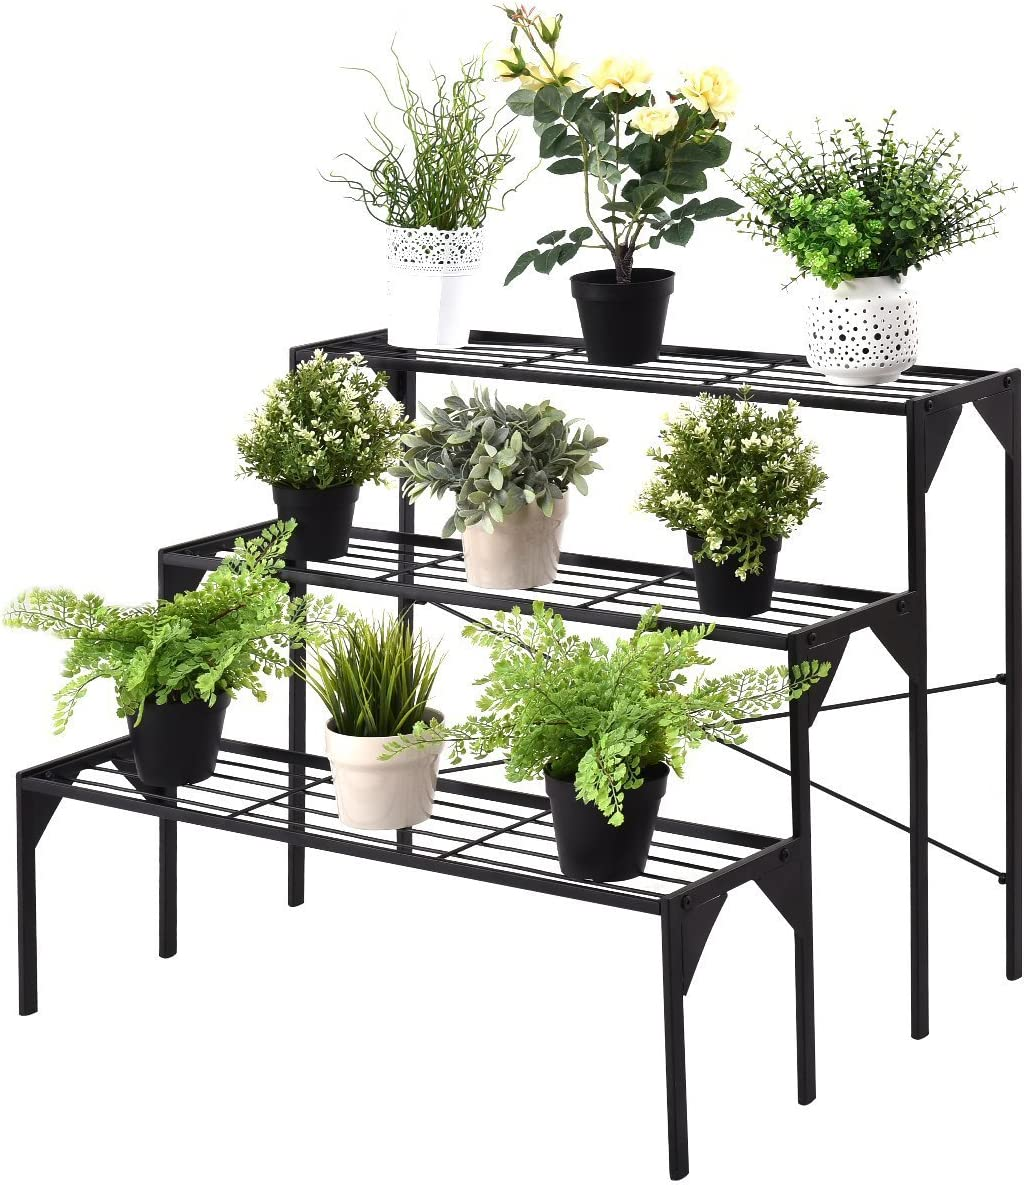 Giantex 3 Tiers Metal Plant Stand, Ladder Flower Pots Holders, 3 Tiers Step Plant Display Rack, Heavy Duty Utility Storage Organizer Rack for Home Garden Patio Balcony, Stair Style Plant Stand